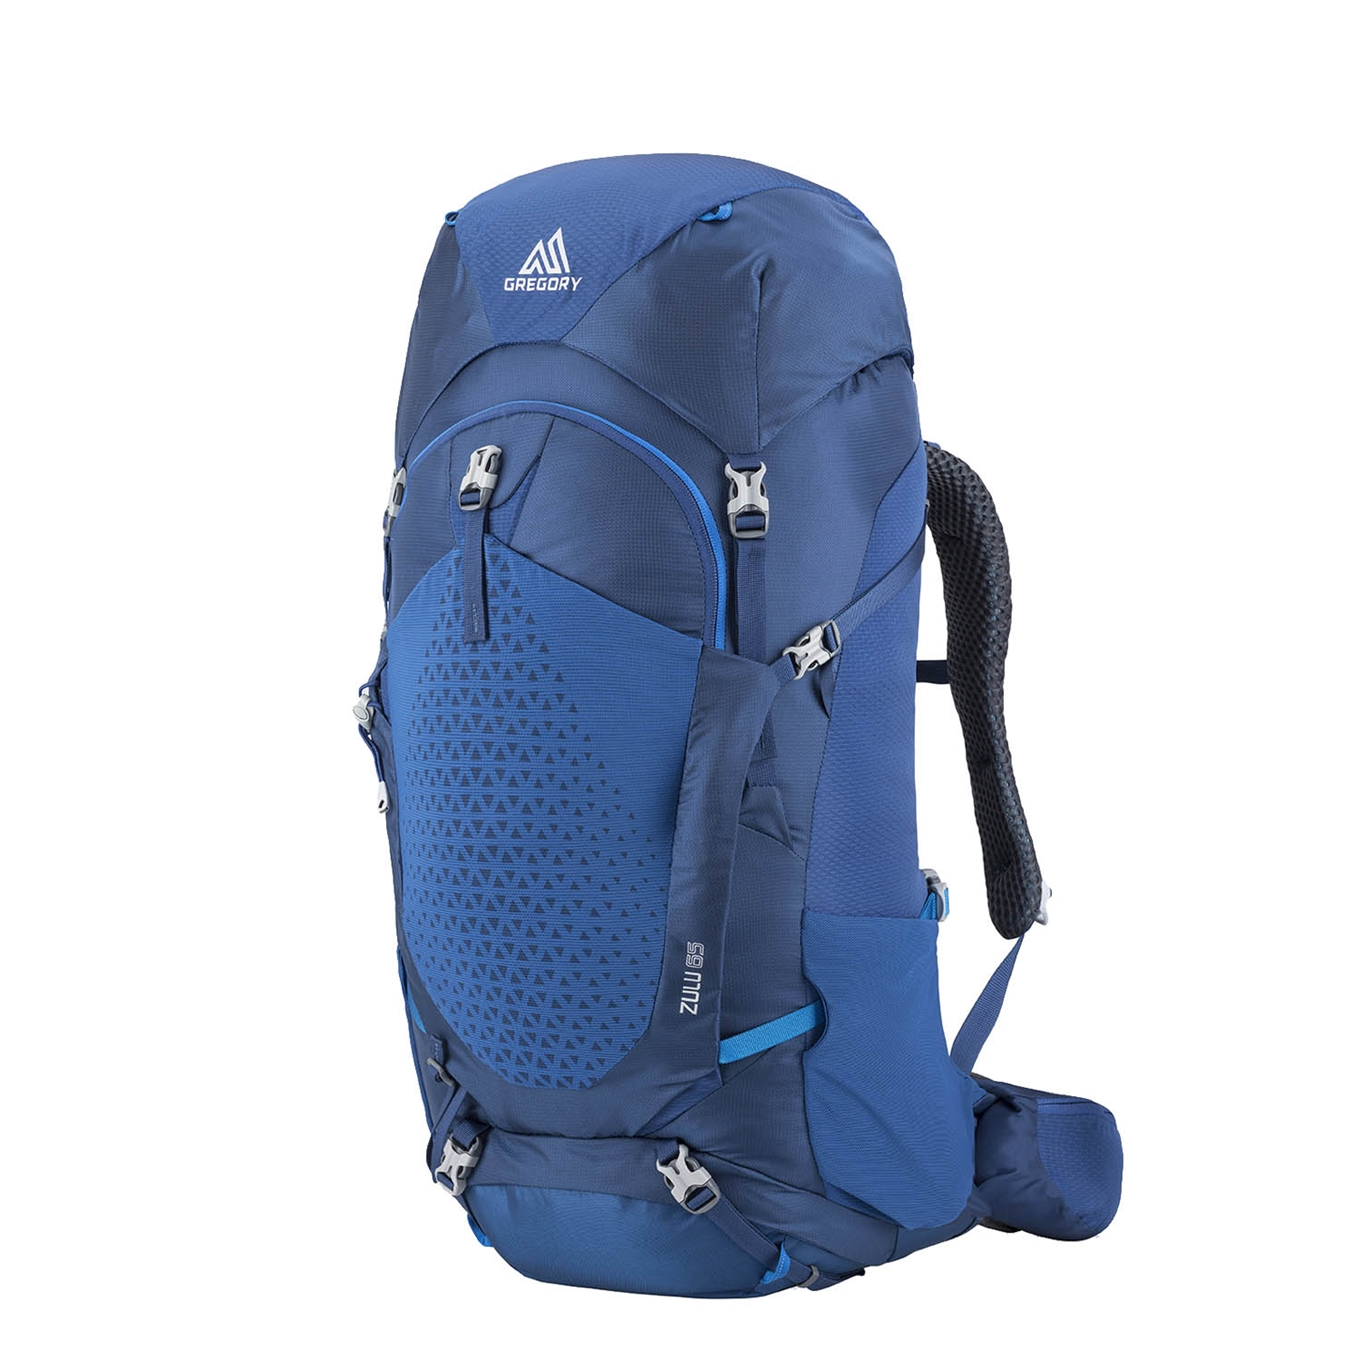 Gregory Zulu 65L Backpack M/L empire blue backpack